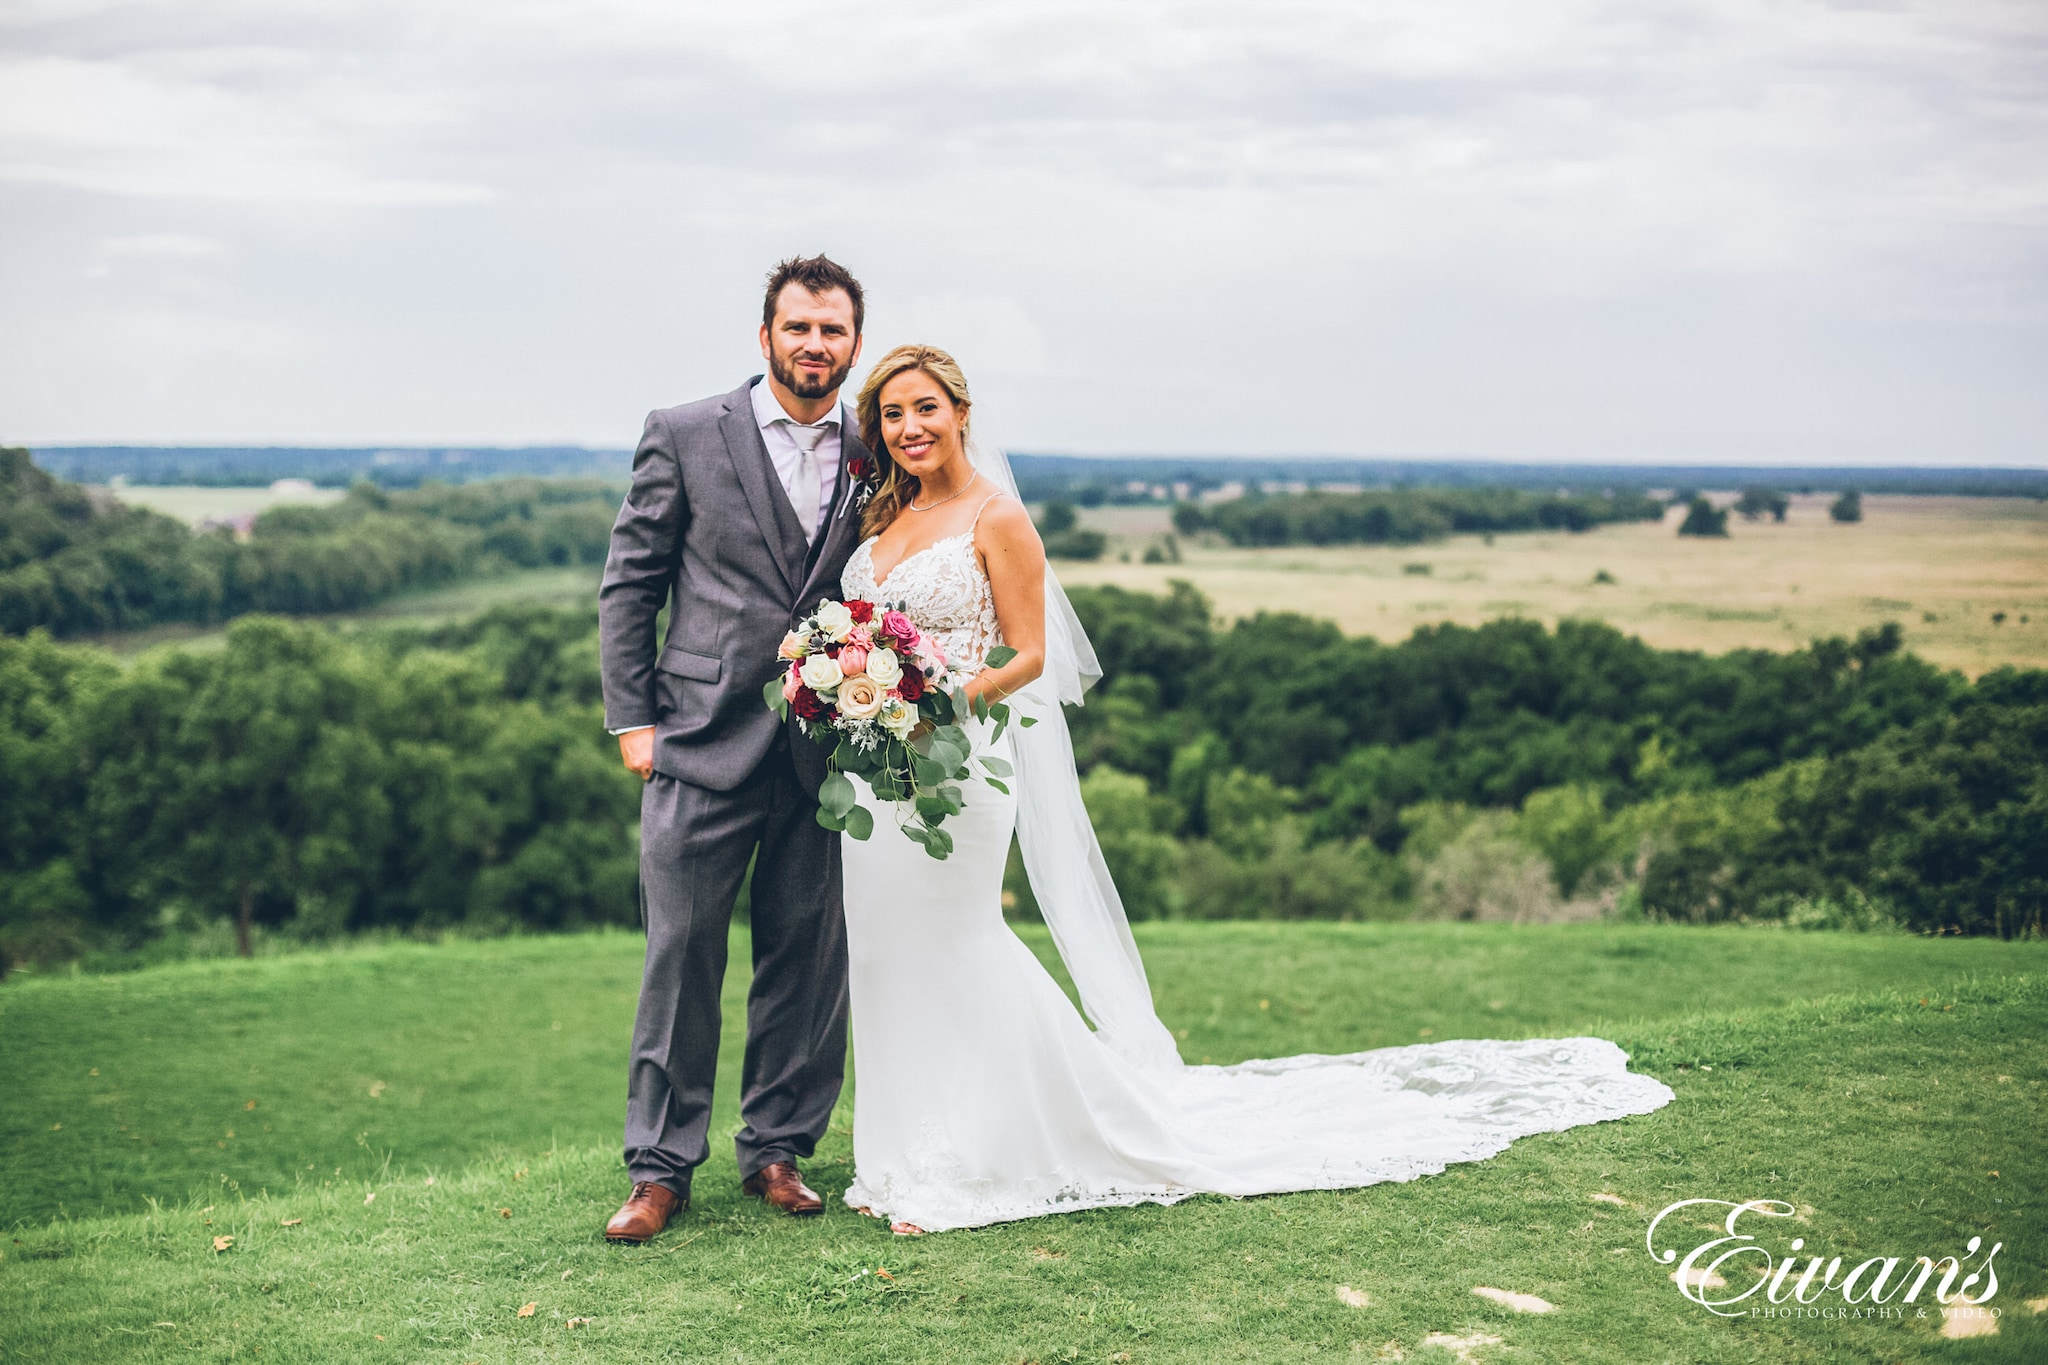 man in black suit and woman in white wedding dress holding bouquet standing on green grass